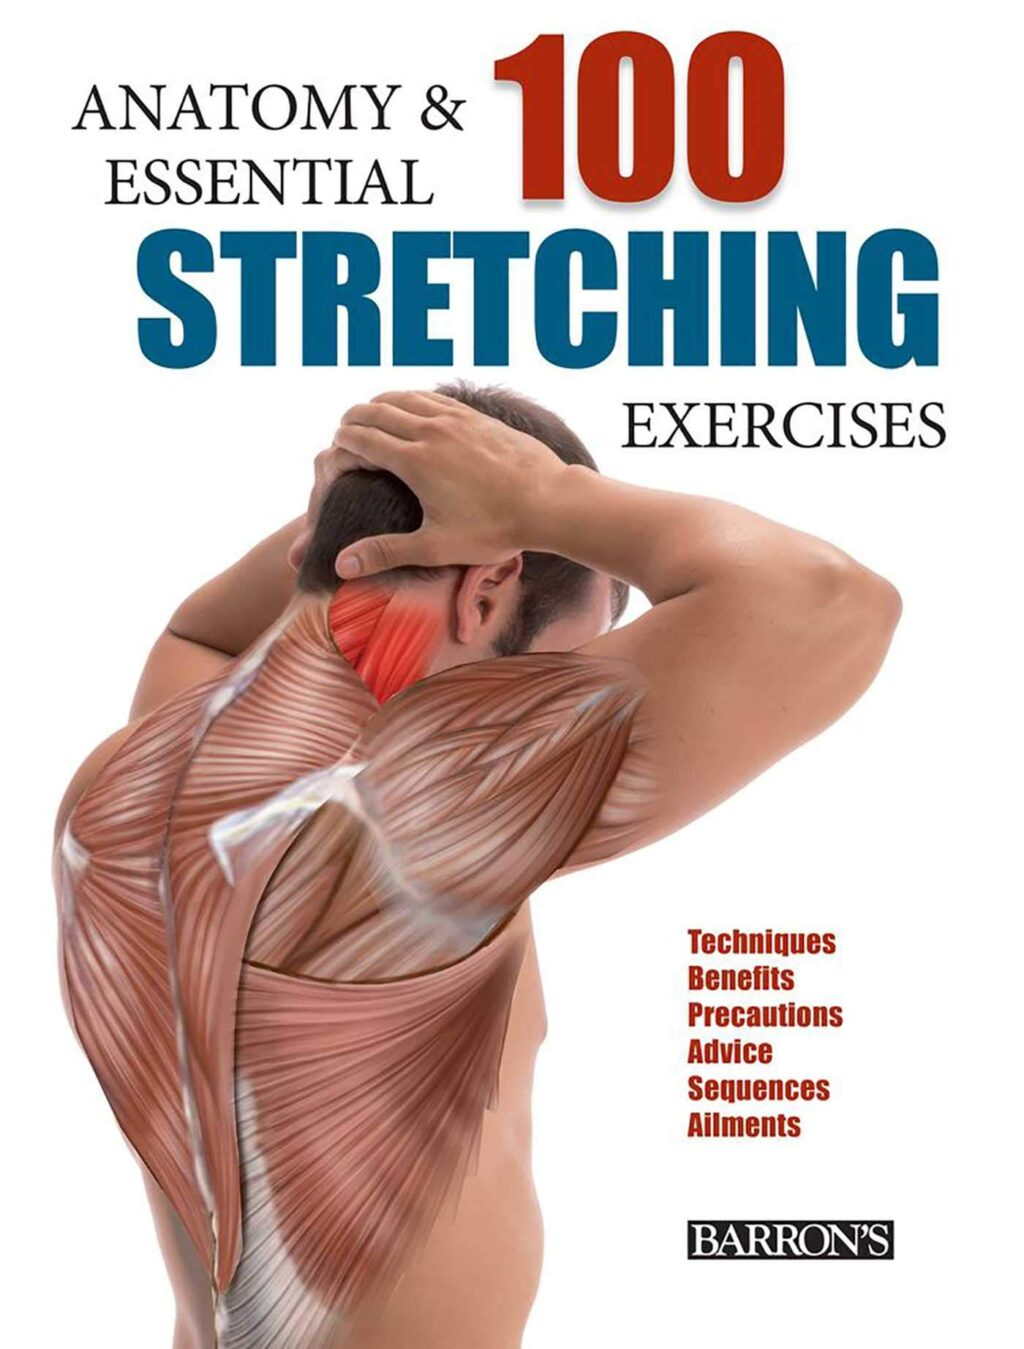 anatomy_100_essential_stretching_exercises